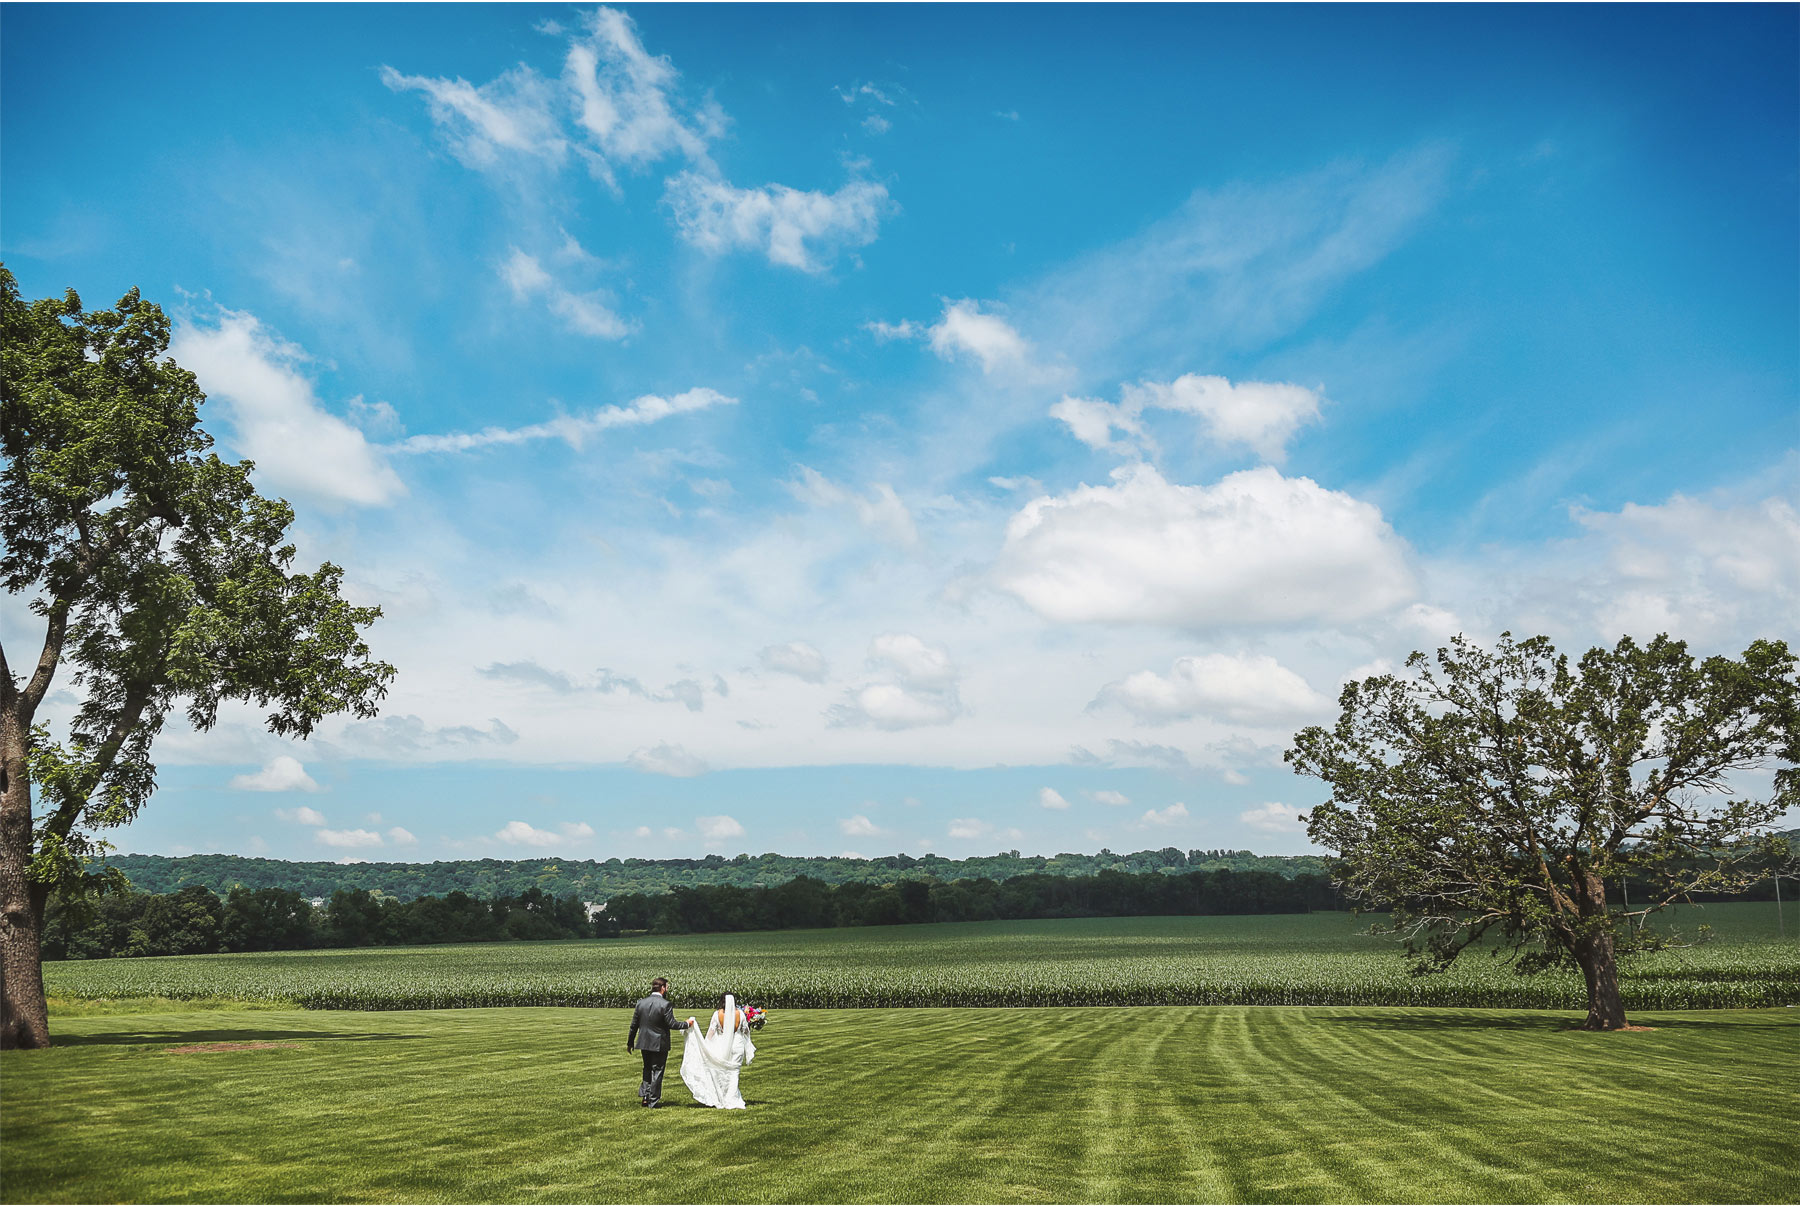 08-Vick-Photography-Rochester-Minnesota-Mayowood-Stone-Barn-Country-Wedding-Field-Summer-Blue-Sky-Bride-Groom-Lizz-and-Brady.jpg